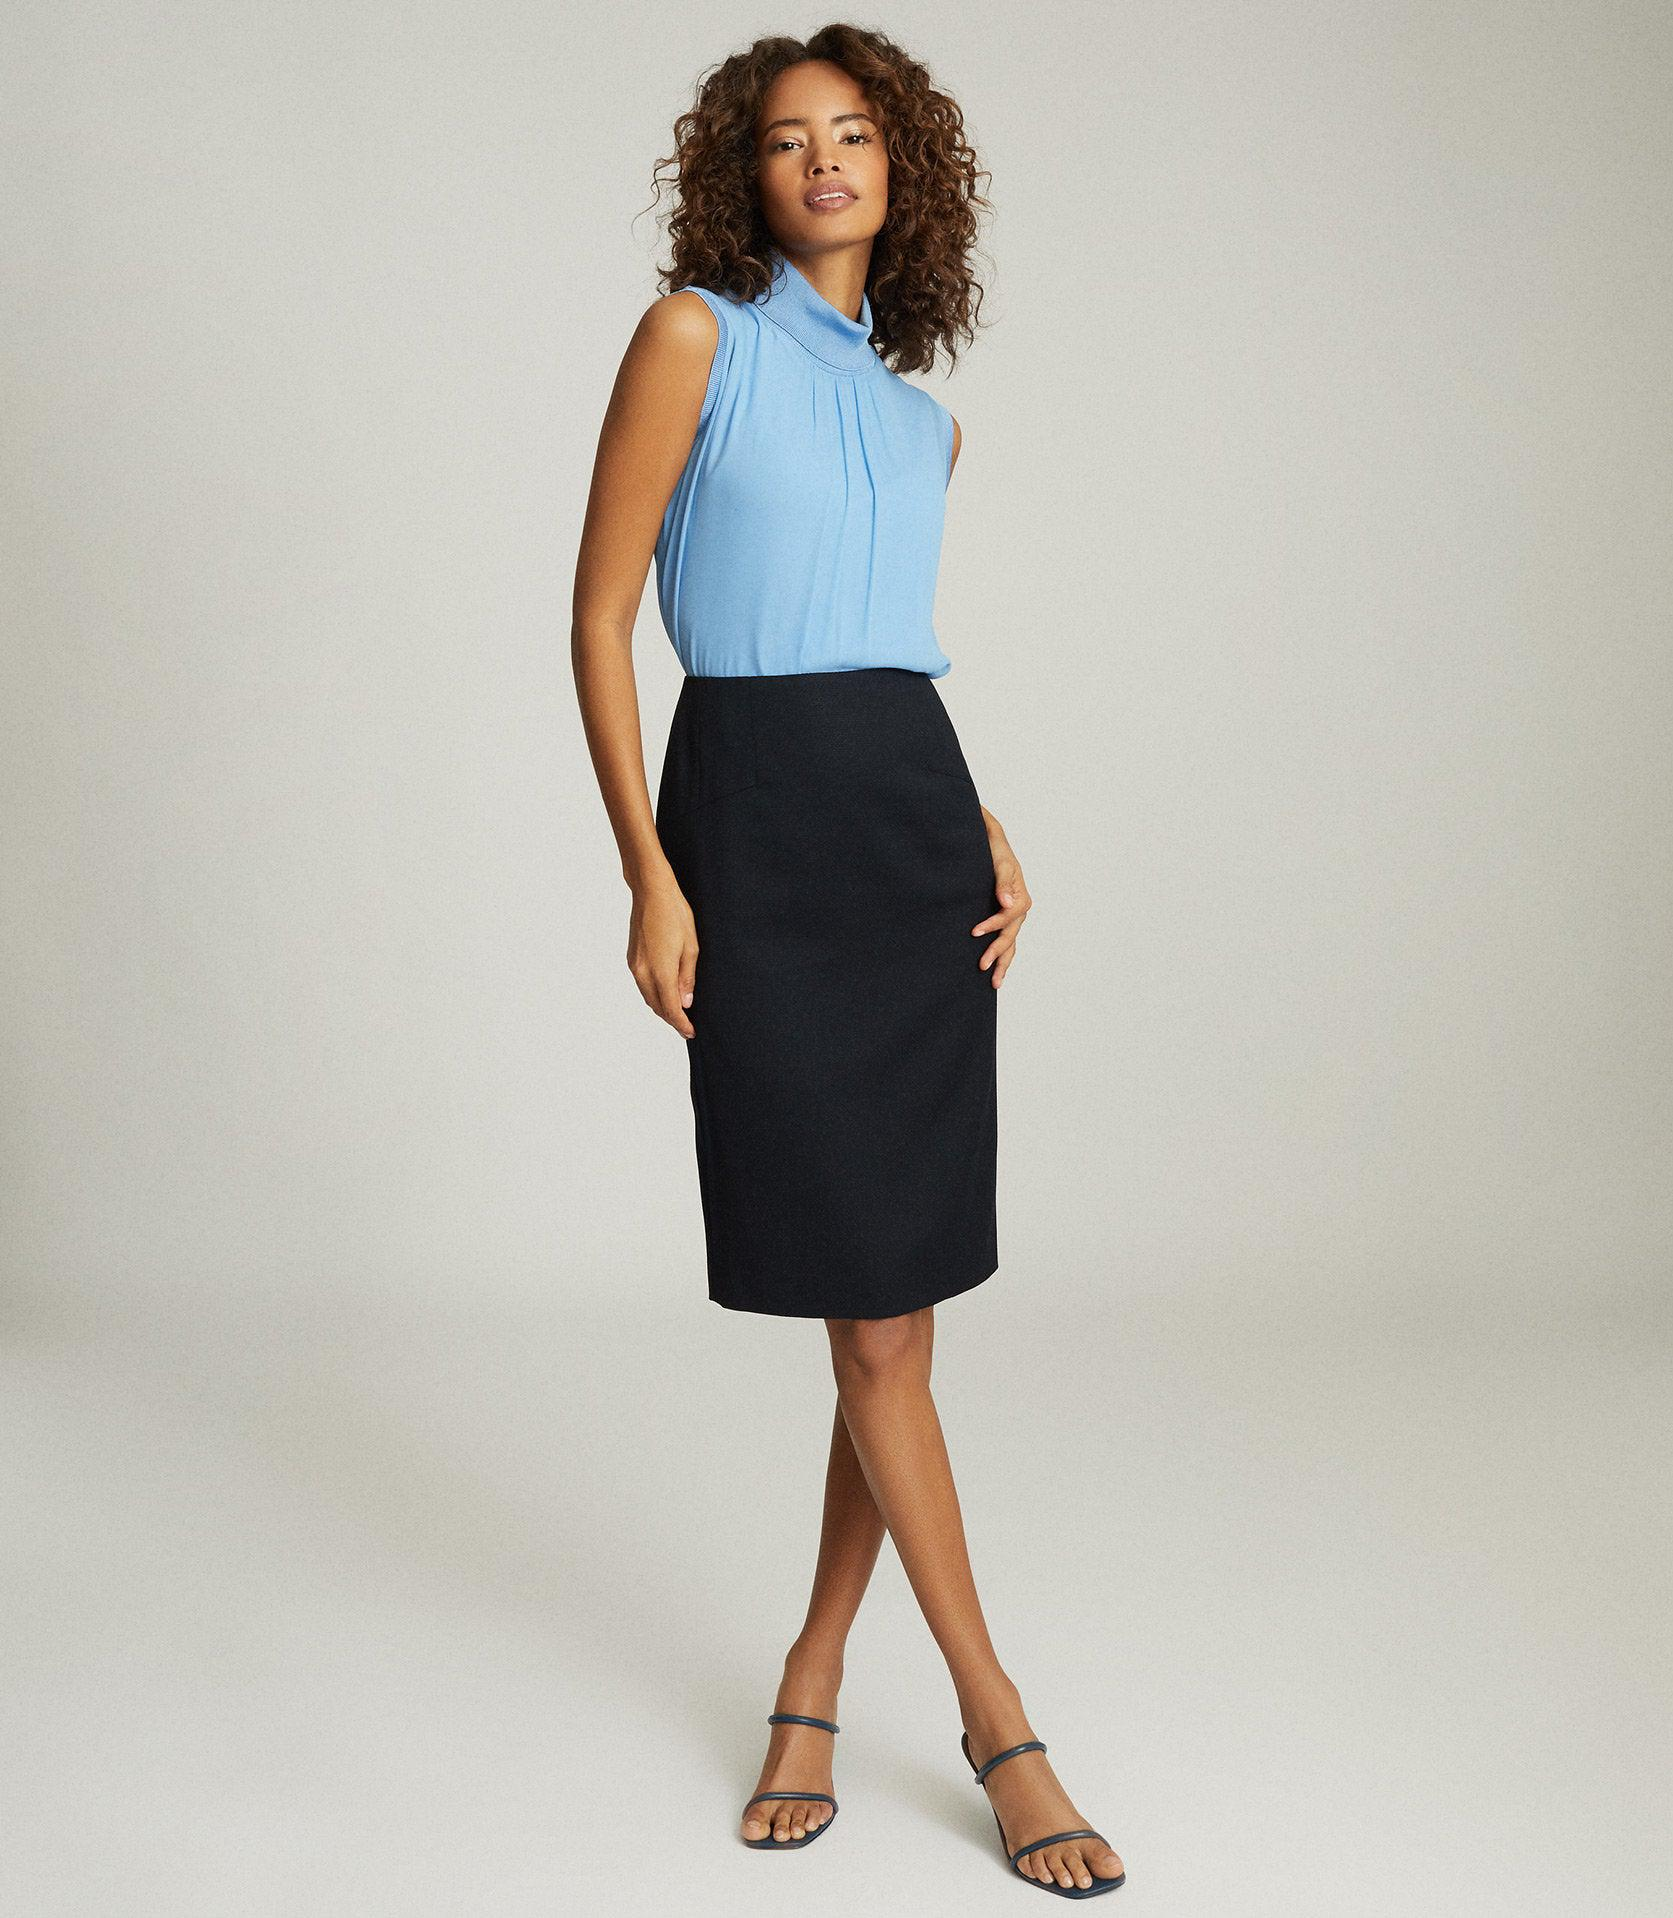 HAYES - TAILORED PENCIL SKIRT